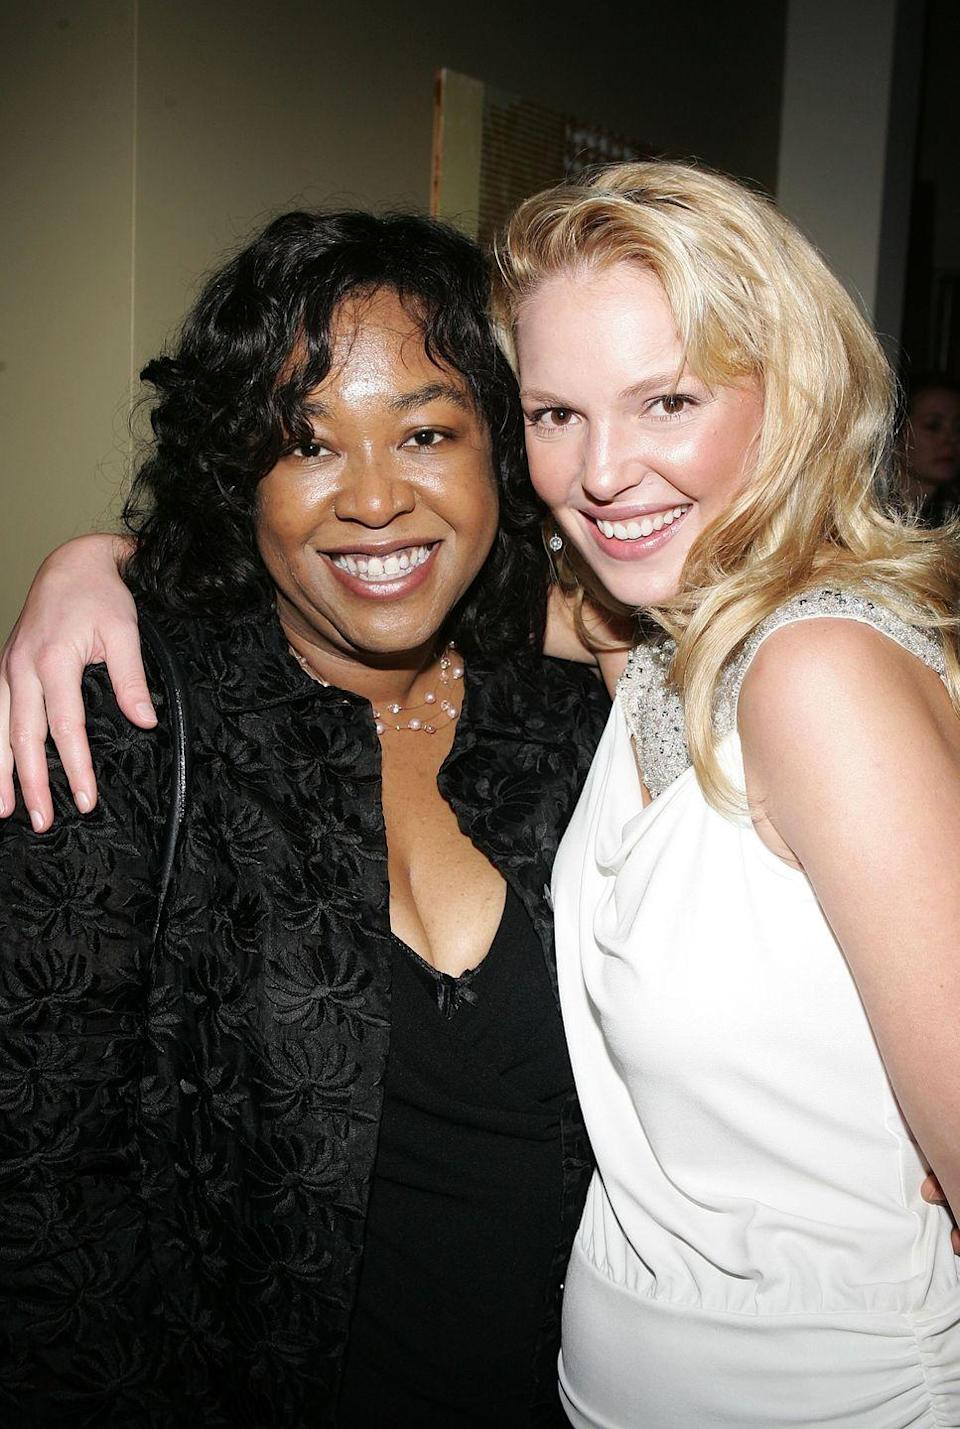 """<p>The drama between Katherine Heigl and <em>Grey's</em> <em>Anatomy</em> creator and producer Shonda Rhimes first came to light in 2008 when the actress <a href=""""https://www.nytimes.com/2008/06/14/arts/television/14heig.html"""" rel=""""nofollow noopener"""" target=""""_blank"""" data-ylk=""""slk:declined her Emmy nomination"""" class=""""link rapid-noclick-resp"""">declined her Emmy nomination</a> for her role as Izzie Stevens on the medical show, stating that she did not feel that she """"was given the material this season to warrant an Emmy nomination."""" The strained relationship between Katherine and Shonda eventually led the actress to exit the show in 2010.</p><p><strong>RELATED: </strong><a href=""""https://www.goodhousekeeping.com/life/entertainment/g32160800/shocking-character-exits-on-tv/"""" rel=""""nofollow noopener"""" target=""""_blank"""" data-ylk=""""slk:20 Shocking Character Exits in TV History — and the Real Reasons the Actors Left"""" class=""""link rapid-noclick-resp"""">20 Shocking Character Exits in TV History — and the Real Reasons the Actors Left</a></p>"""